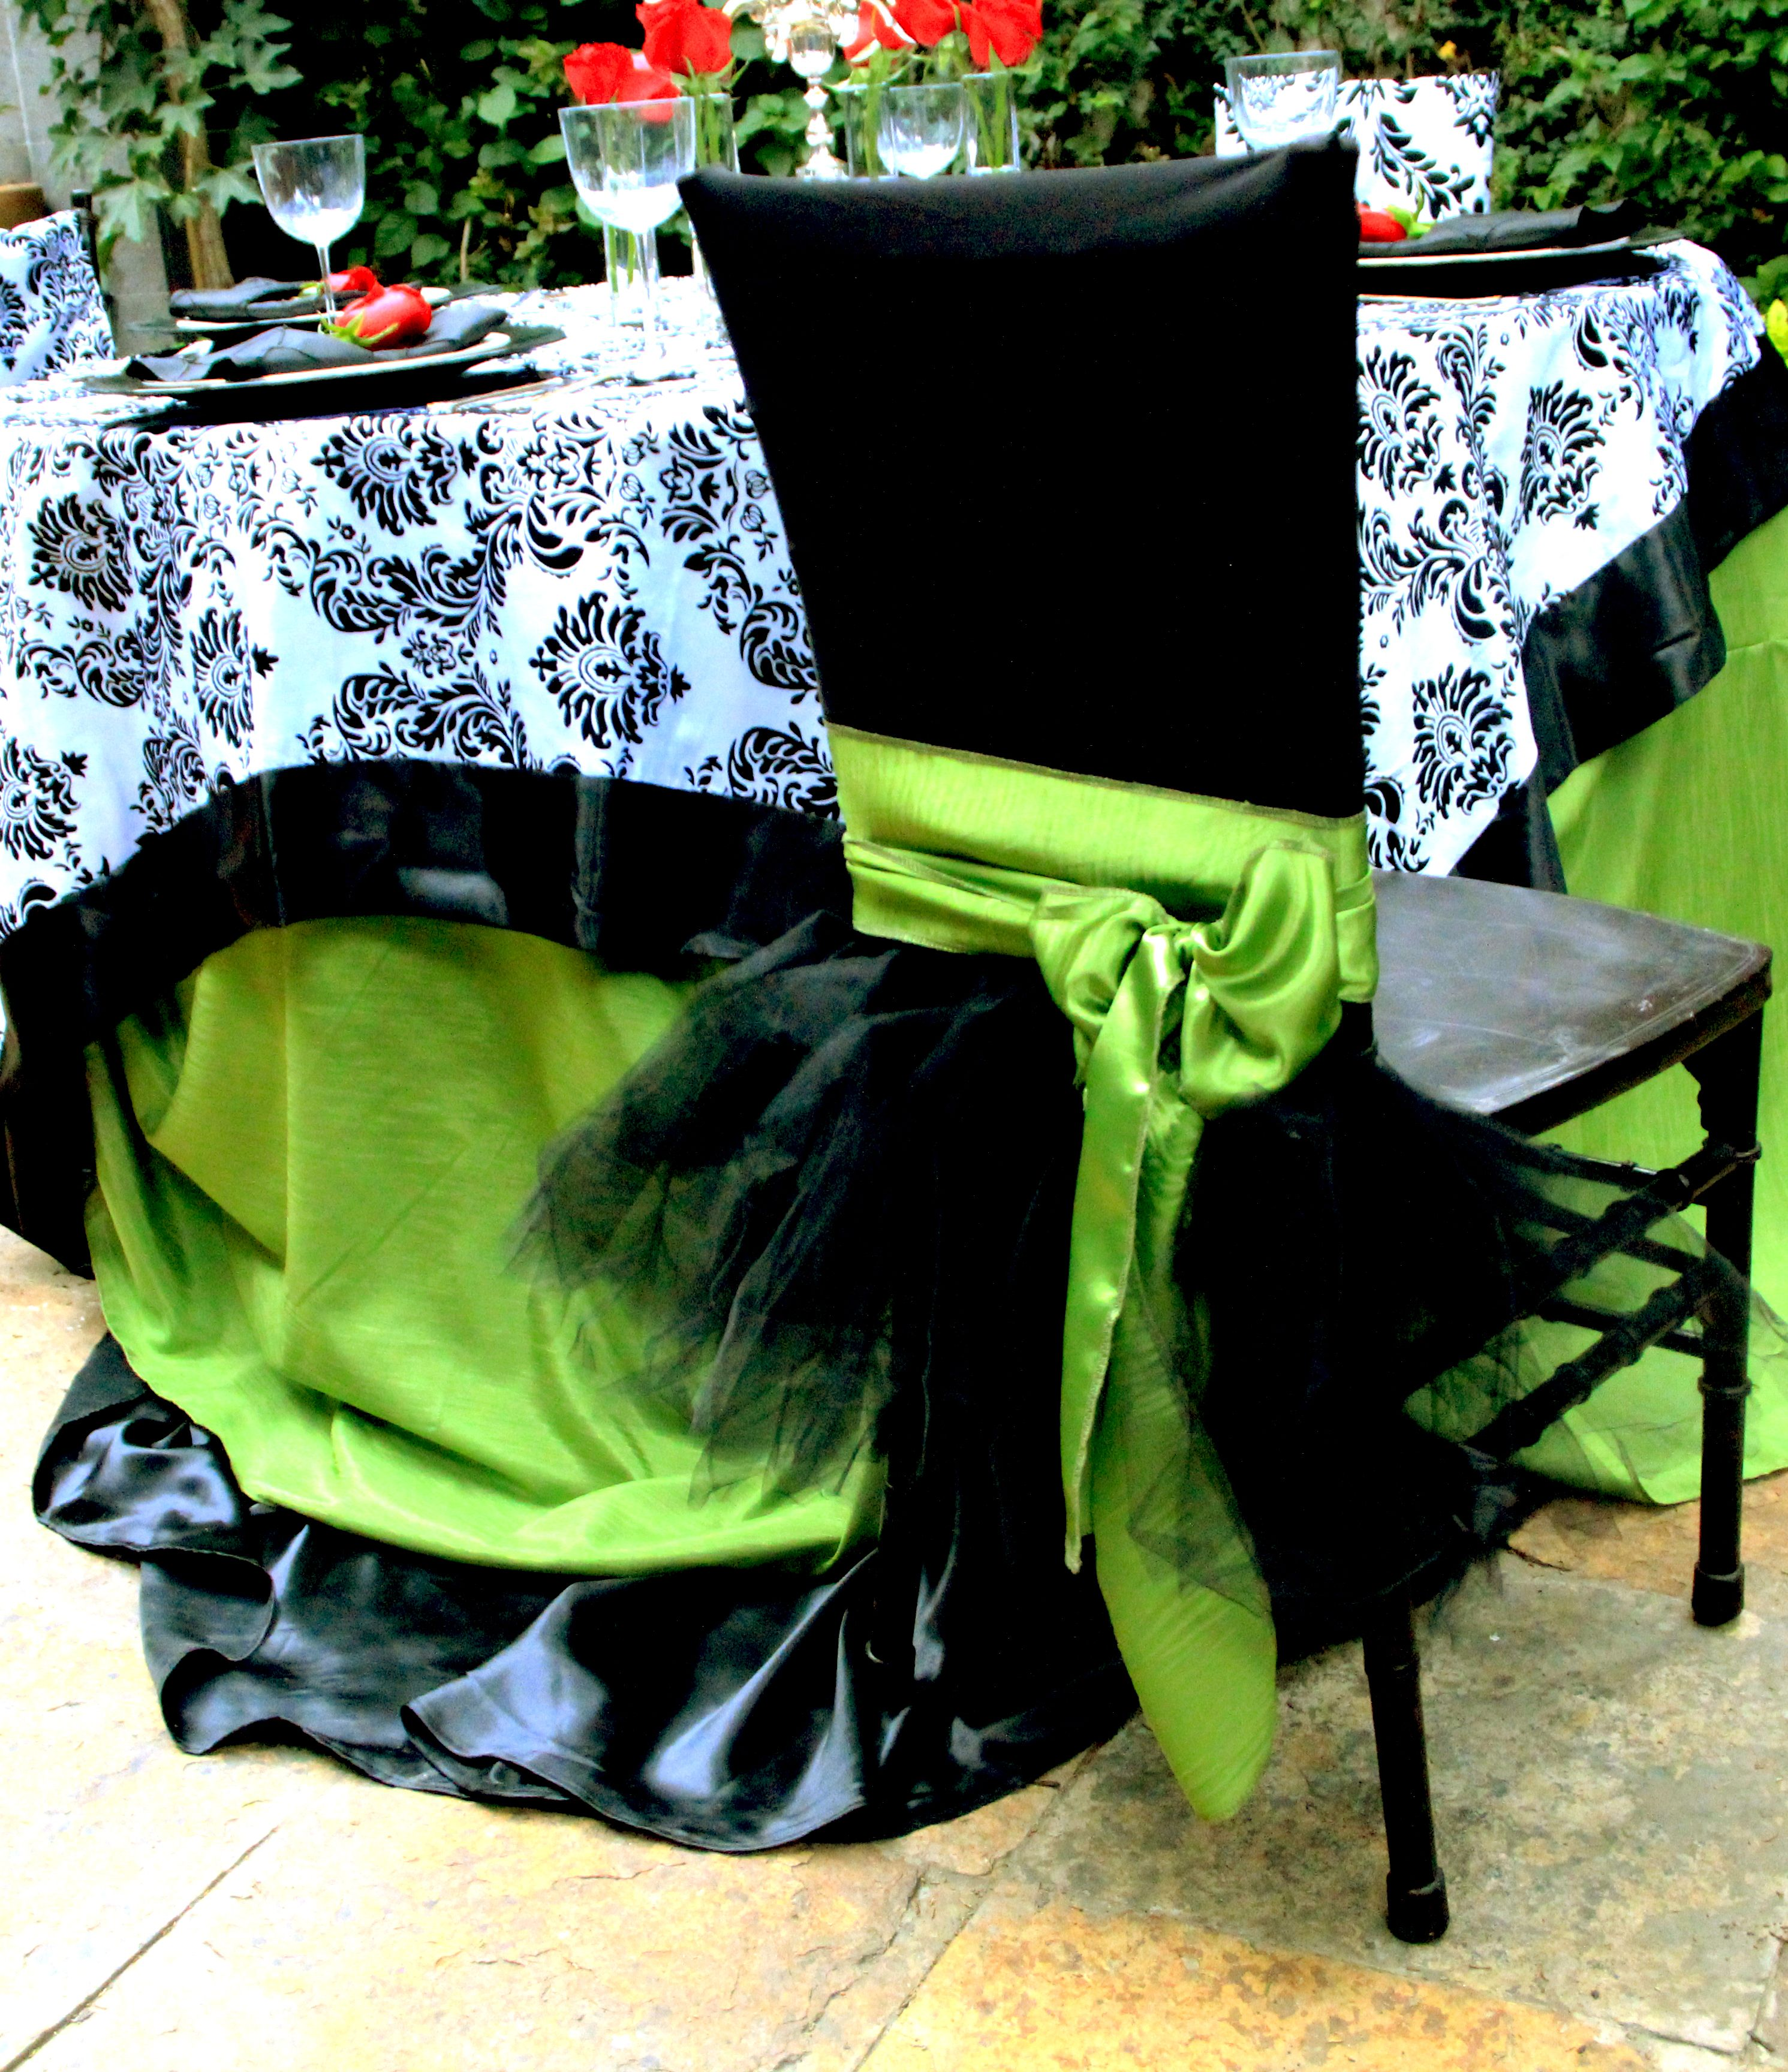 Black And White Damask Overlay On Tablecloth Layers In Black And Green,  Black Tutu